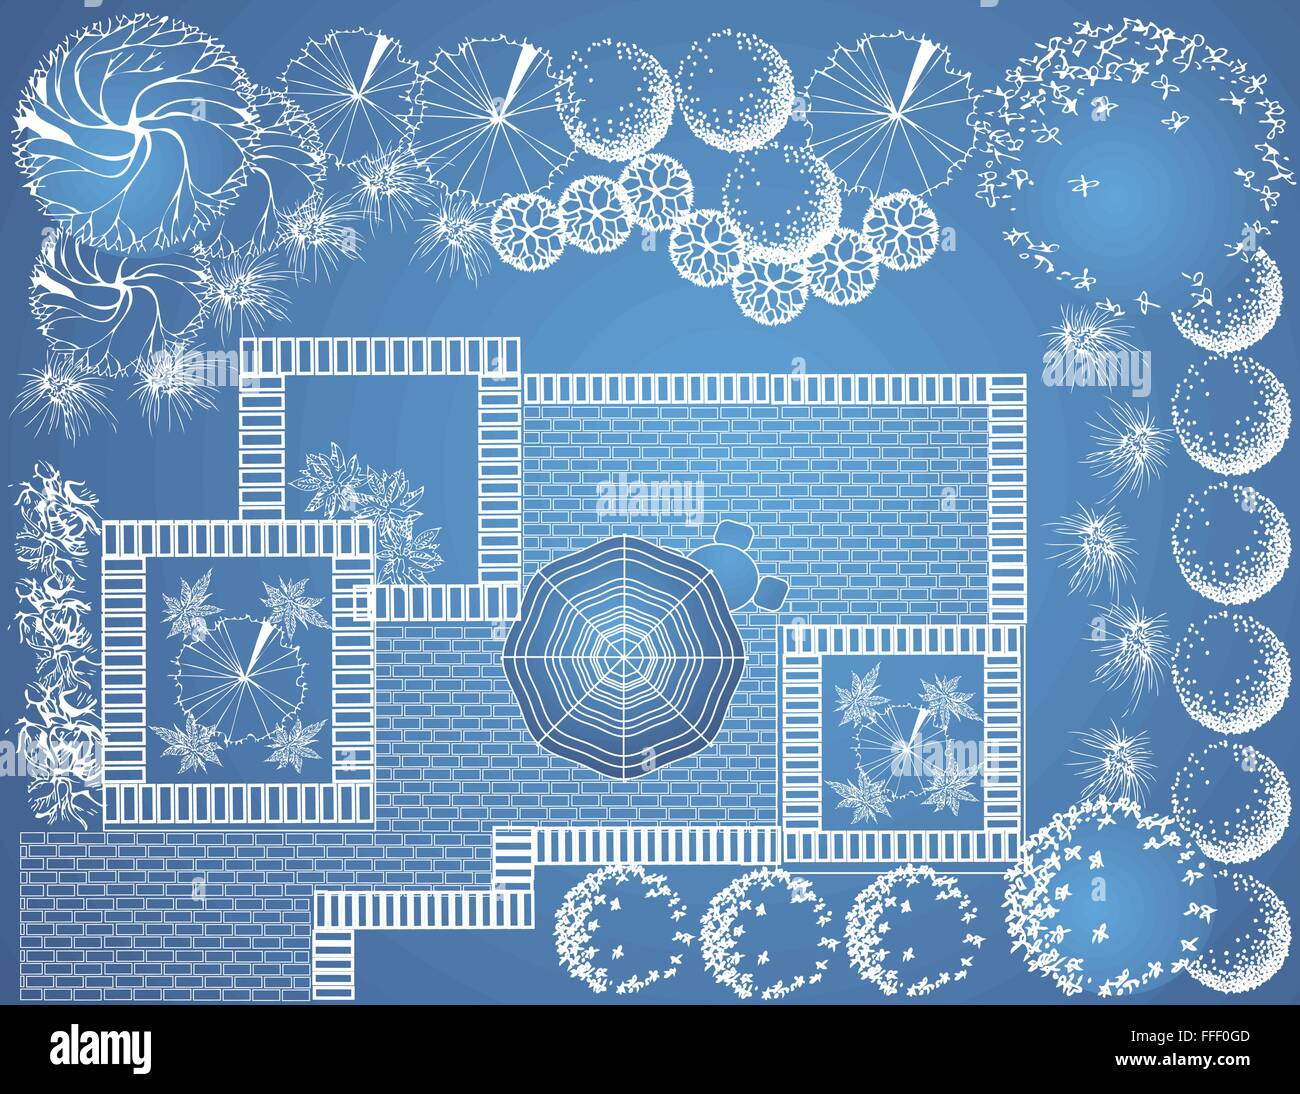 Vector blueprint of landscape architectural project garden plan vector blueprint of landscape architectural project garden plan with tree symbols malvernweather Choice Image